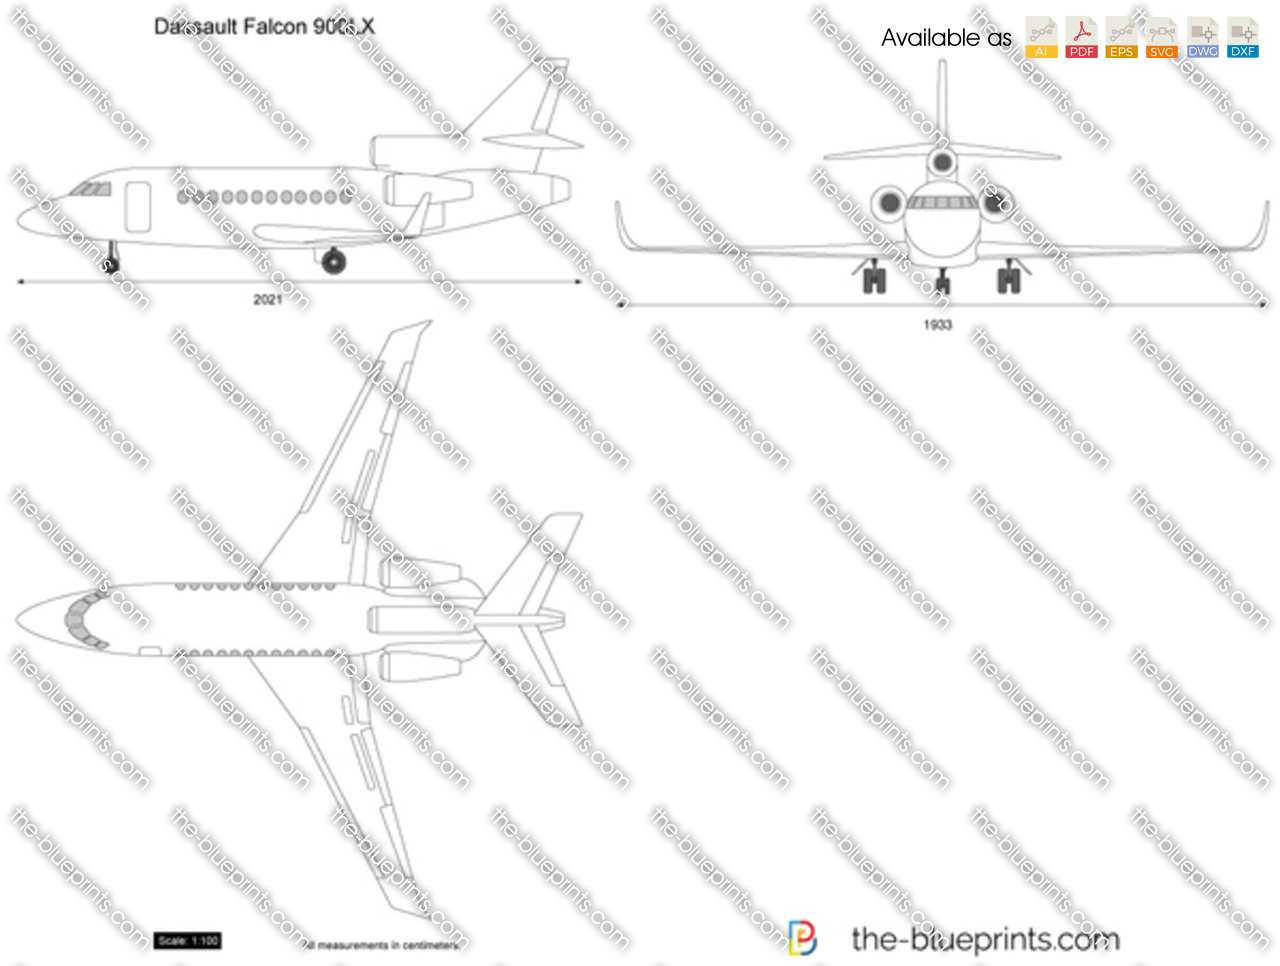 Dassault falcon 900lx vector drawing for Where to get blueprints